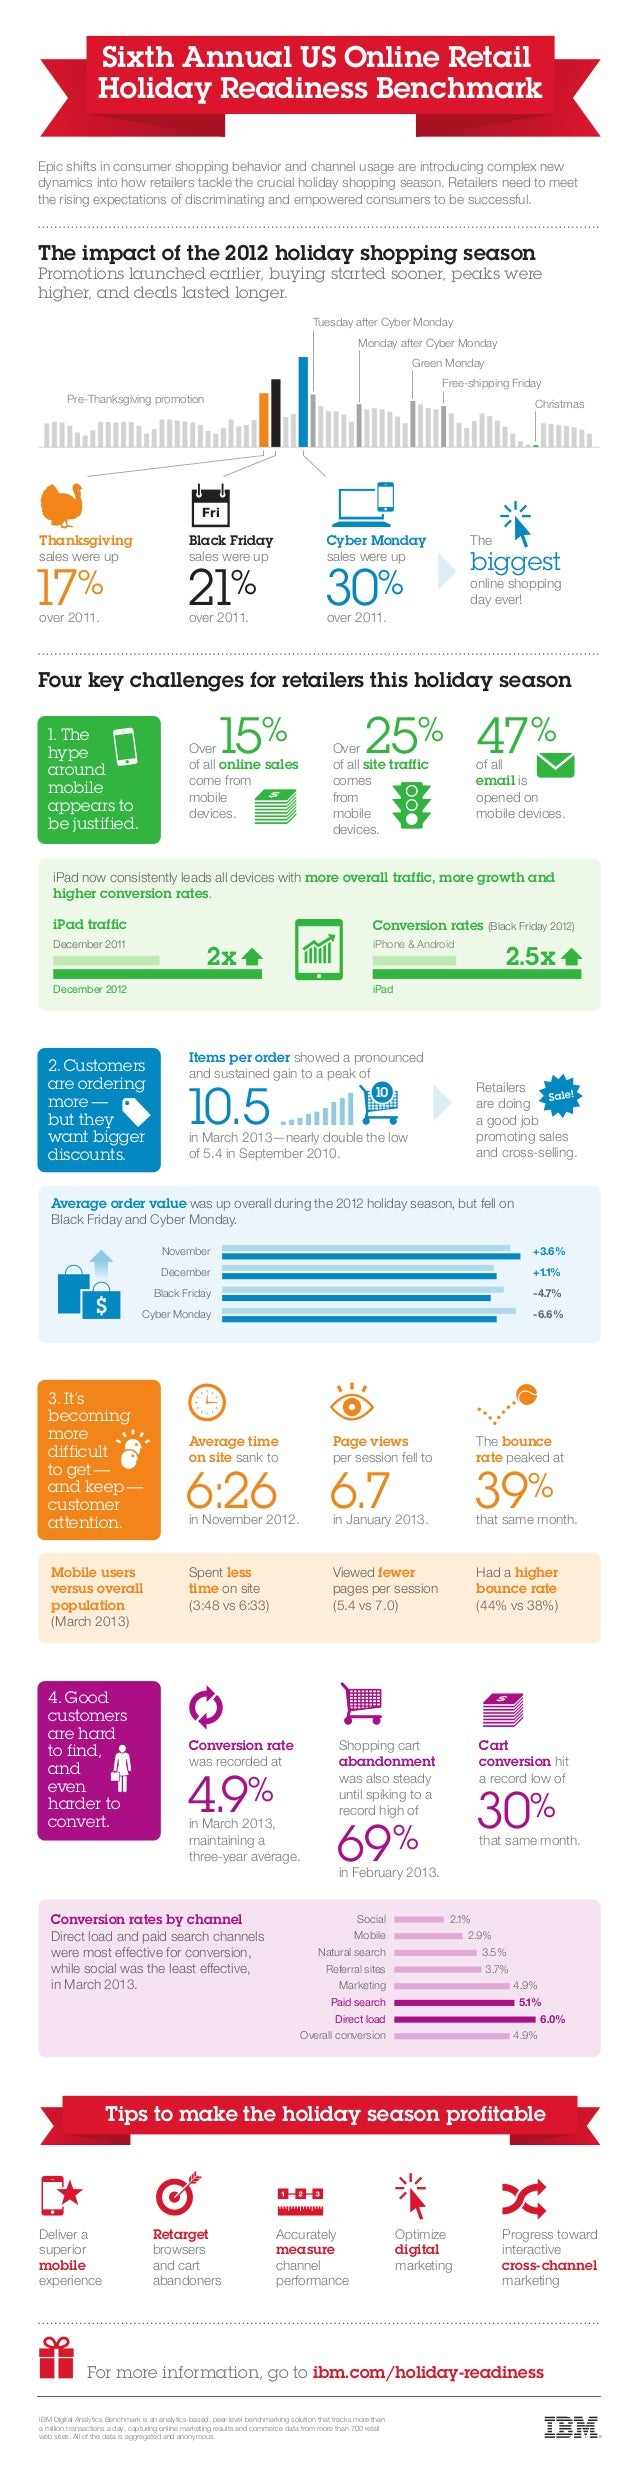 Infographic: IBM Sixth Annual US Online Retail Holiday Readiness Benchmark